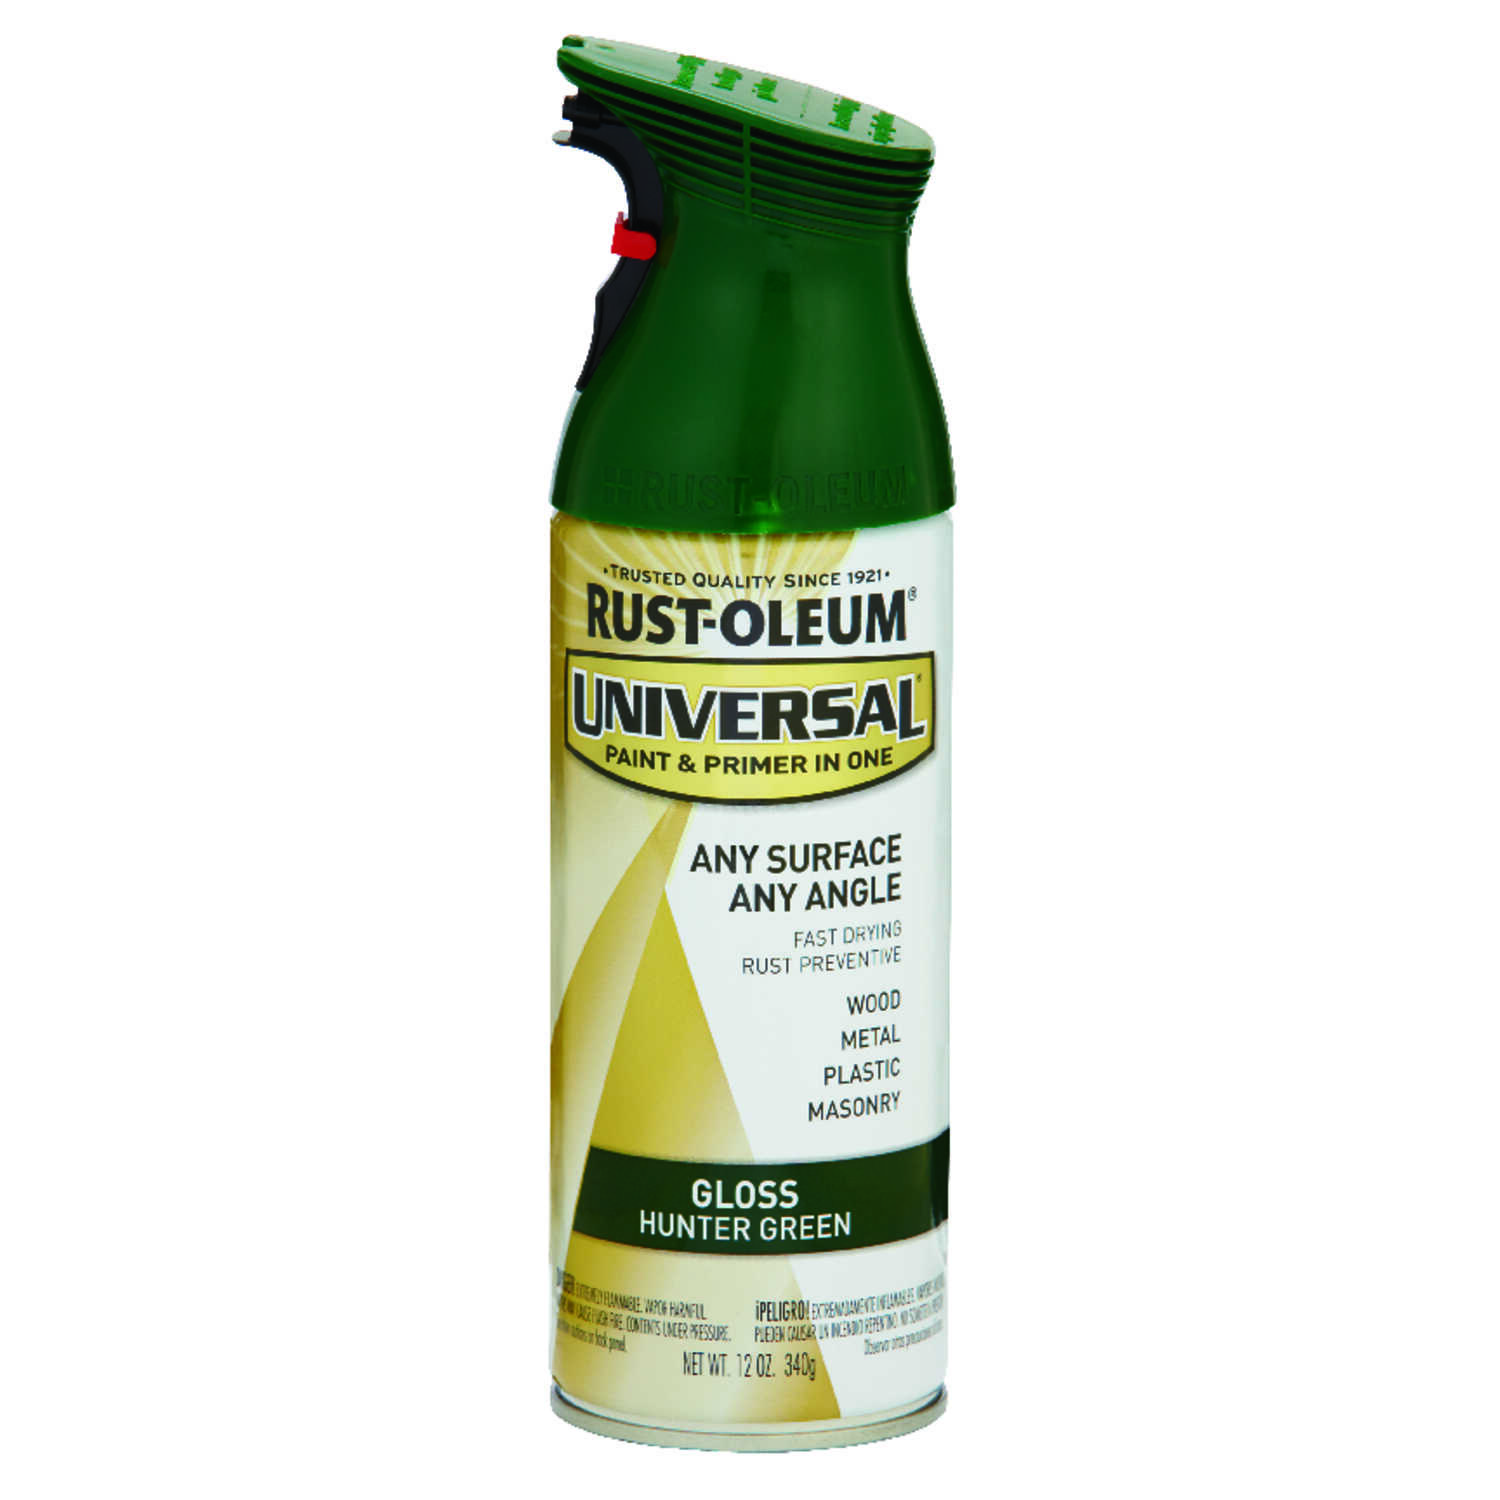 Rust-Oleum  Universal Paint & Primer in One  Gloss  Hunter Green  Spray Paint  12 oz.